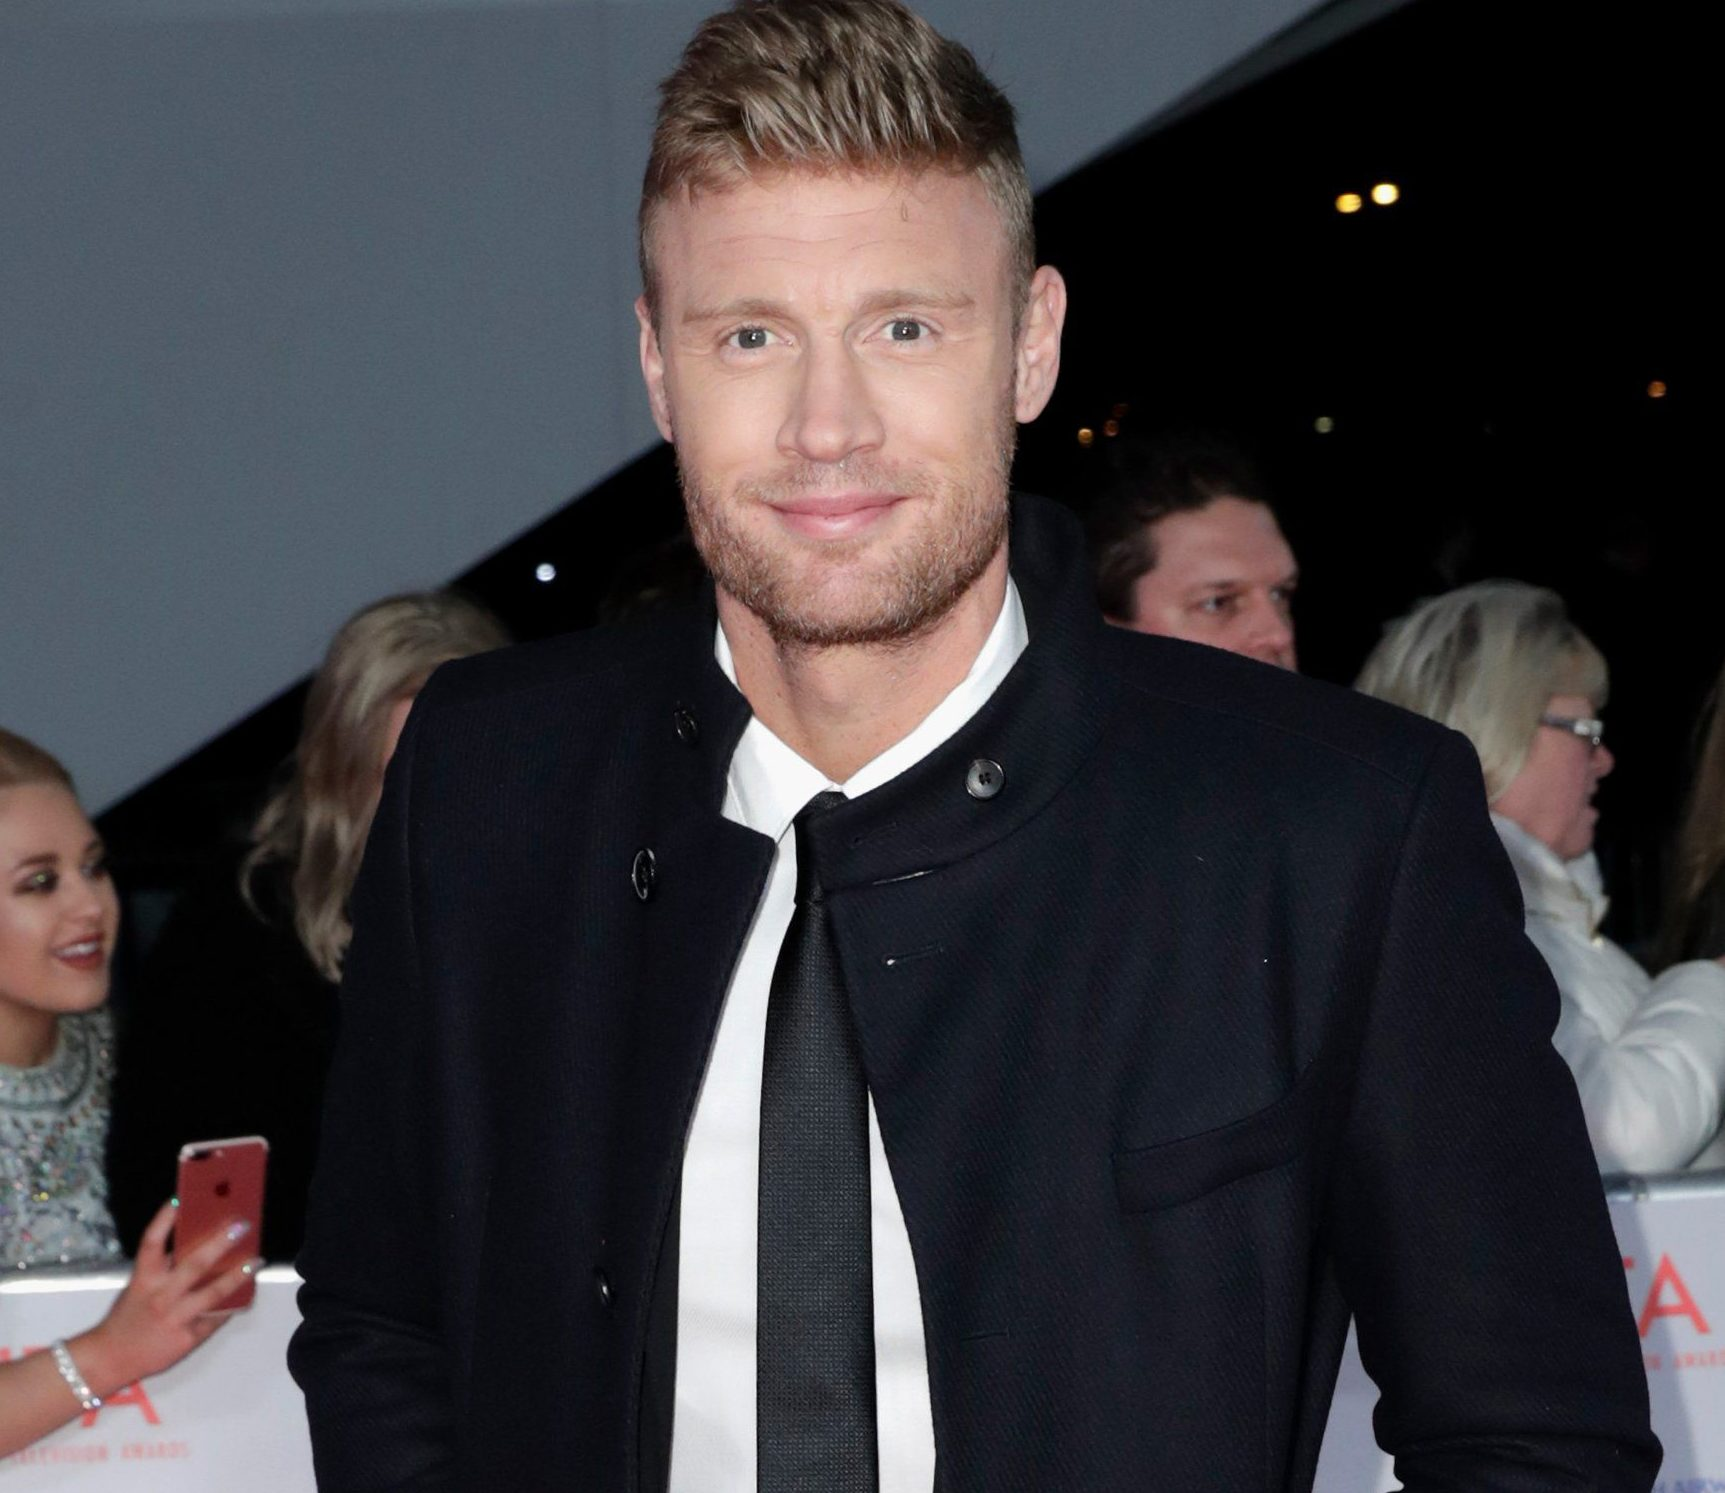 LONDON, ENGLAND - JANUARY 23: Andrew Flintoff attends the National Television Awards 2018 at the O2 Arena on January 23, 2018 in London, England. (Photo by John Phillips/Getty Images)